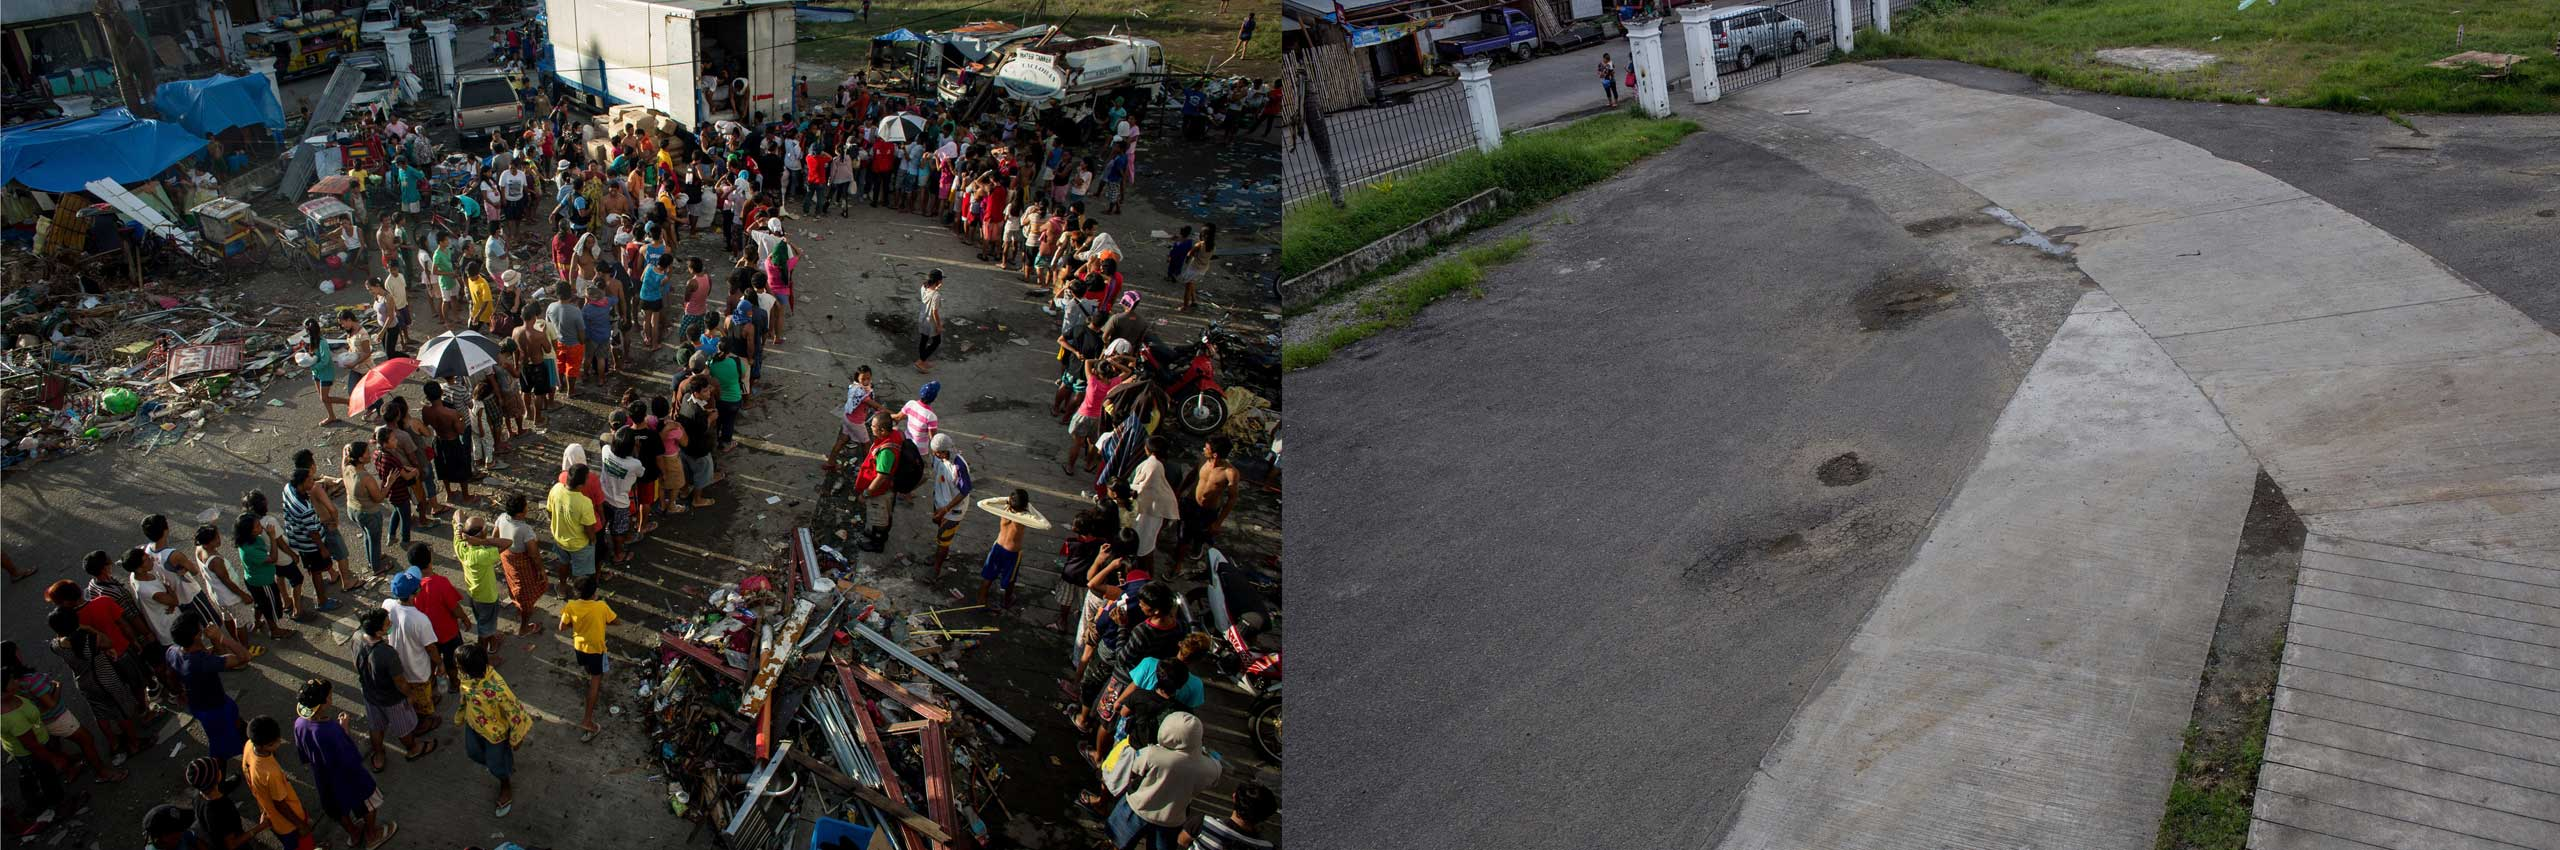 Before: People line up for relief handouts outside the Tacloban Stadium on November 15, 2013 in Leyte, Philippines.After: View of the grounds of the Tacloban Astro Dome one year after Typhoon Haiyan on Nov. 3, 2014.